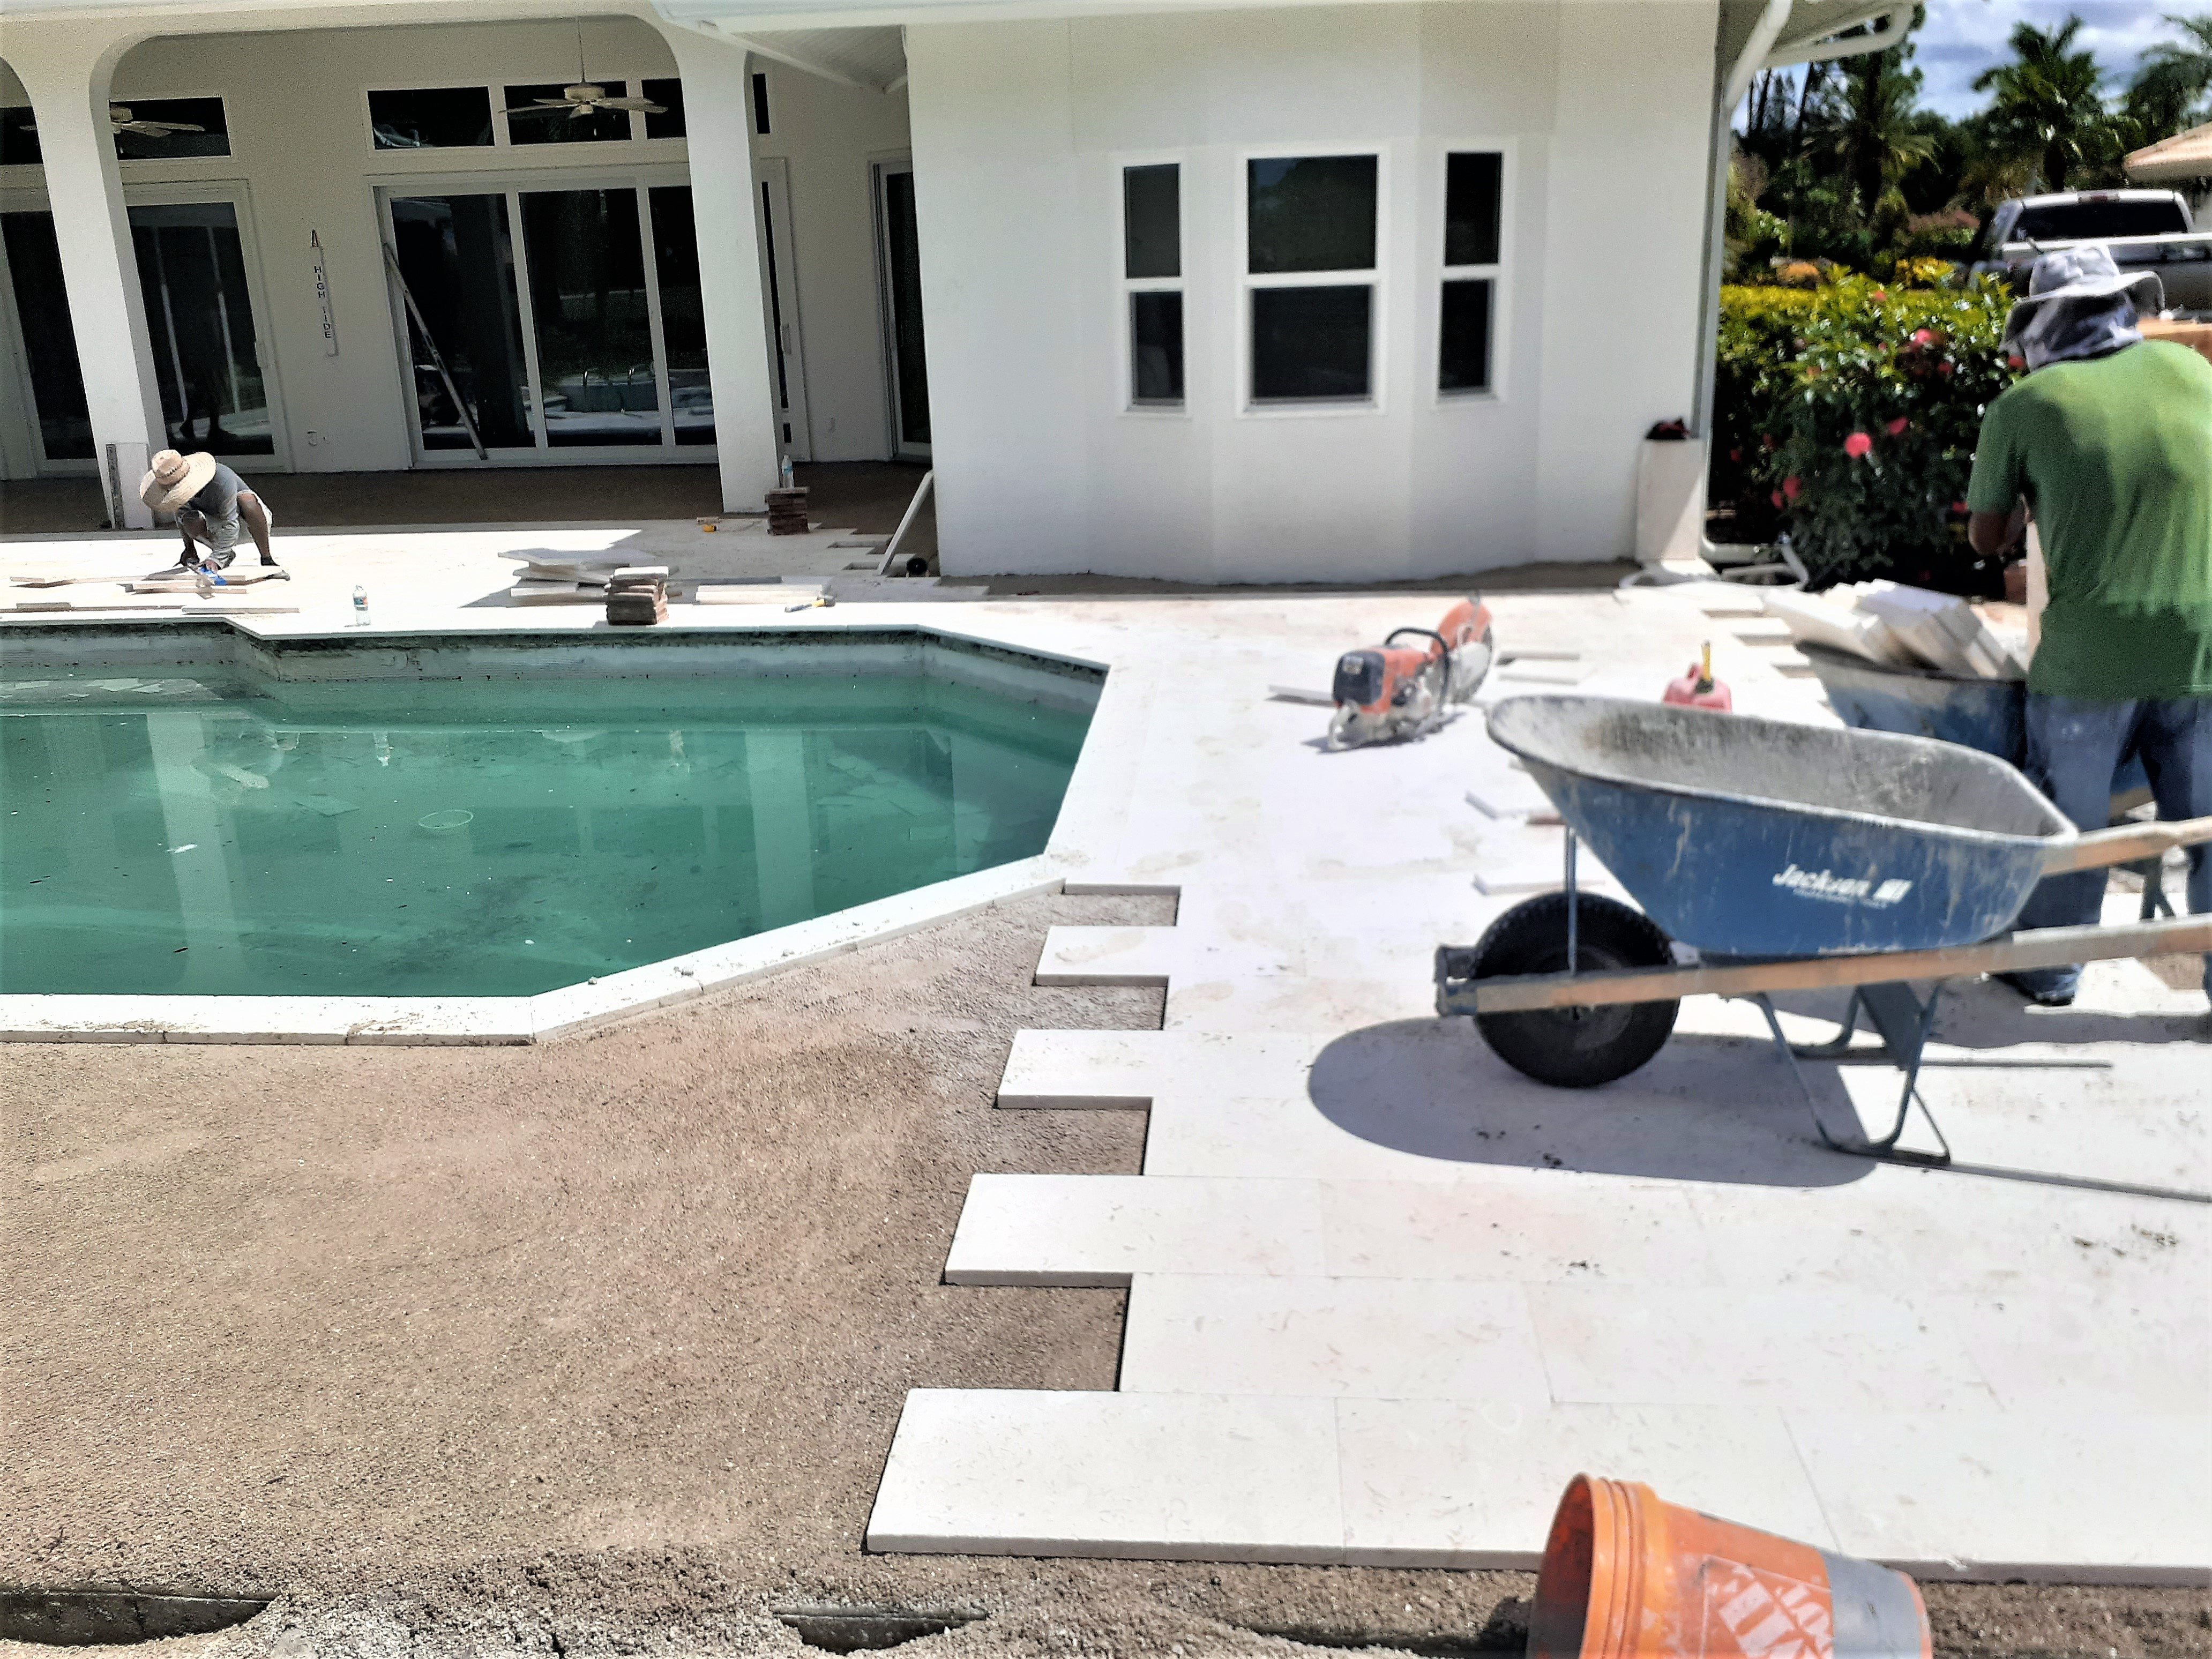 Shell Stone Deck & Coping